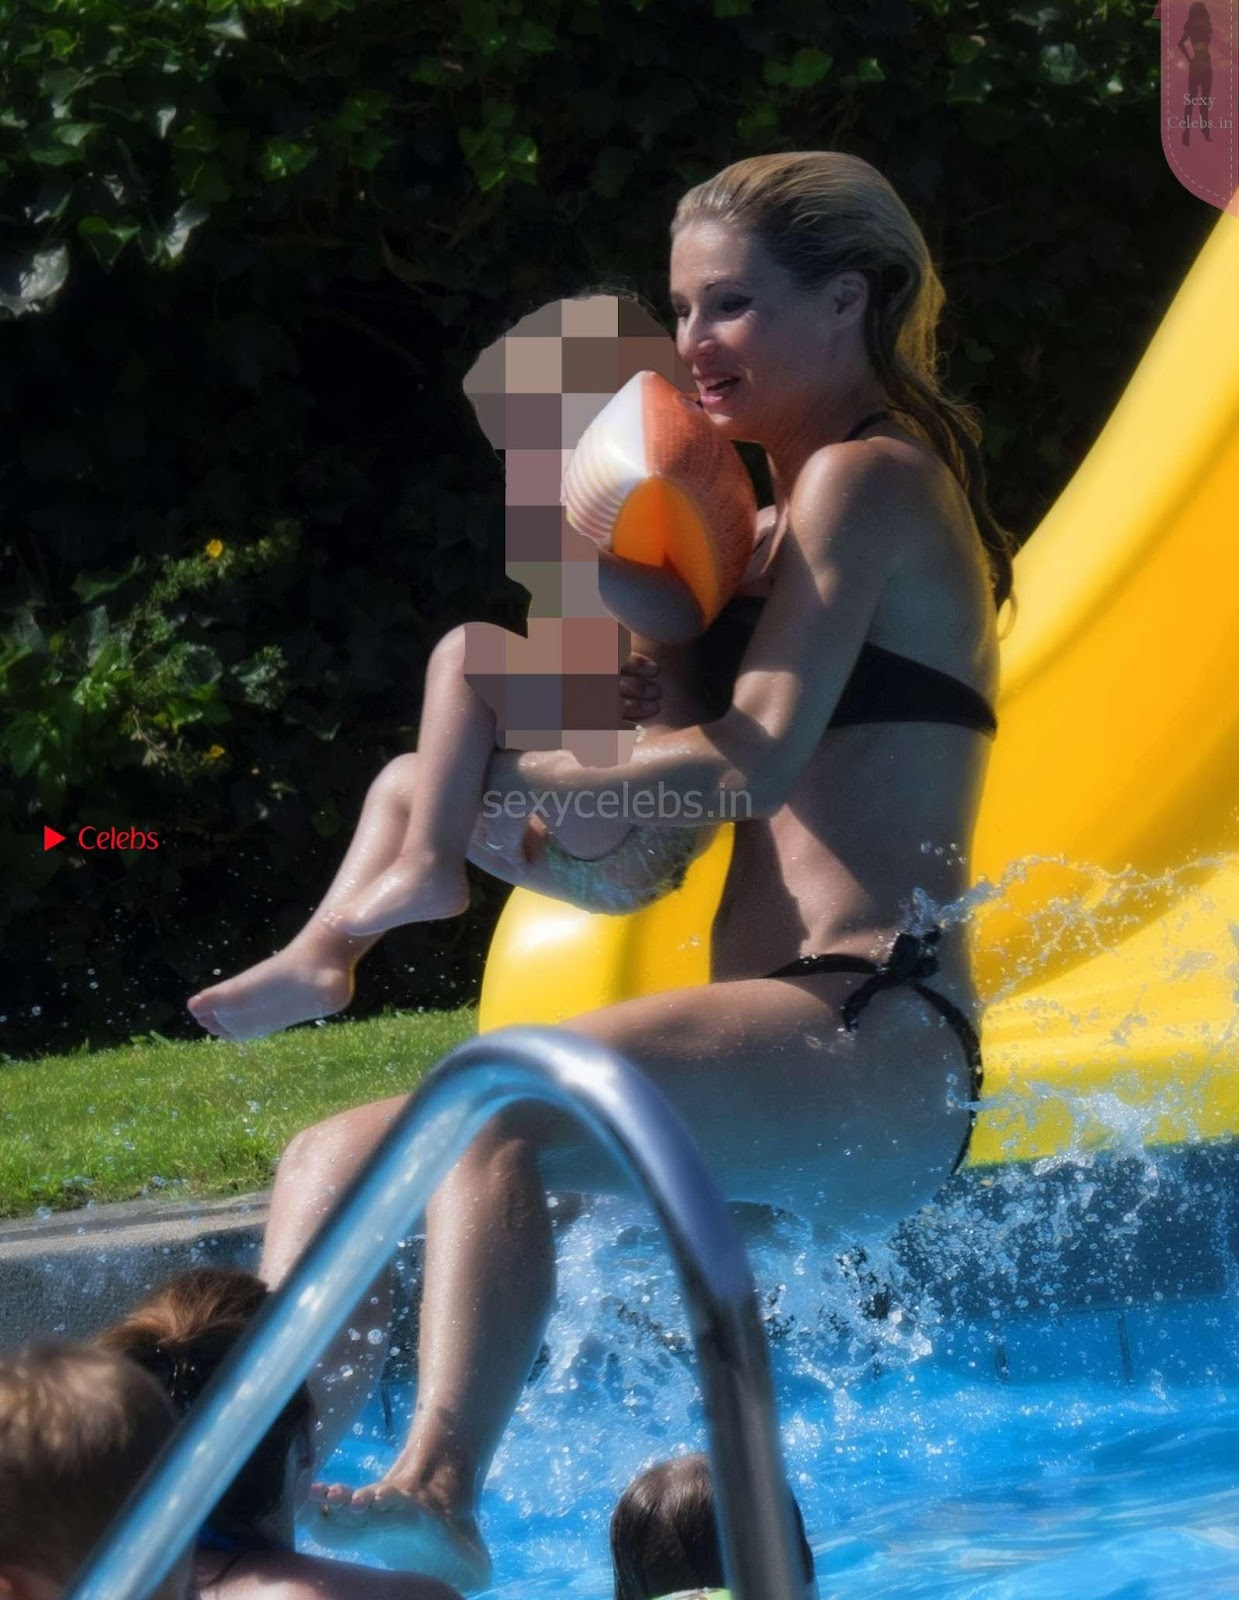 Michelle Hunziker in wet Black Bikini having fun wow sexy naughty babe August 2017